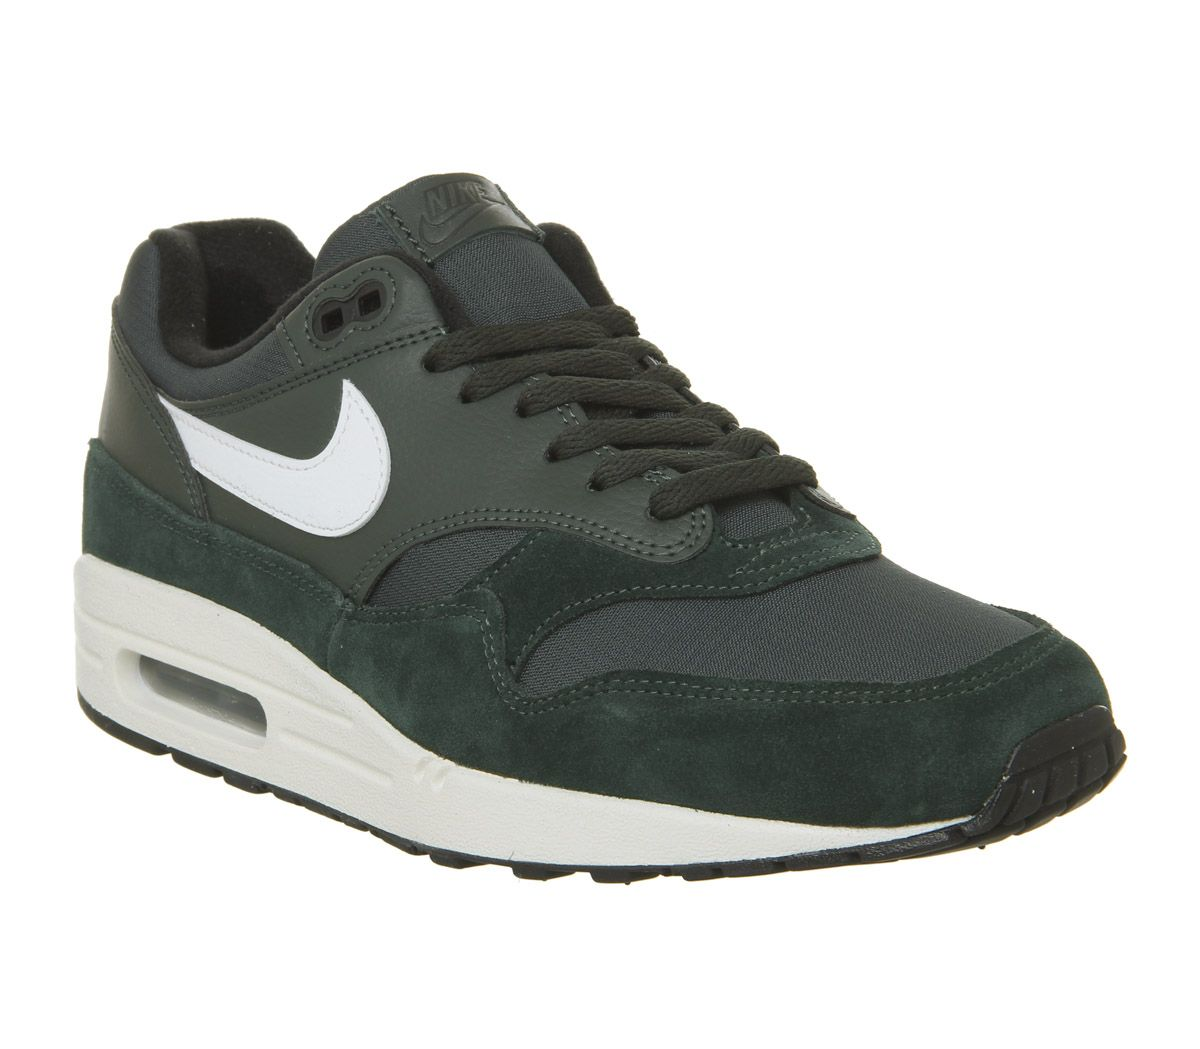 newest 991ff b6fdb Nike Air Max 1 Trainers Outdoor Green Sail Black - His trainers